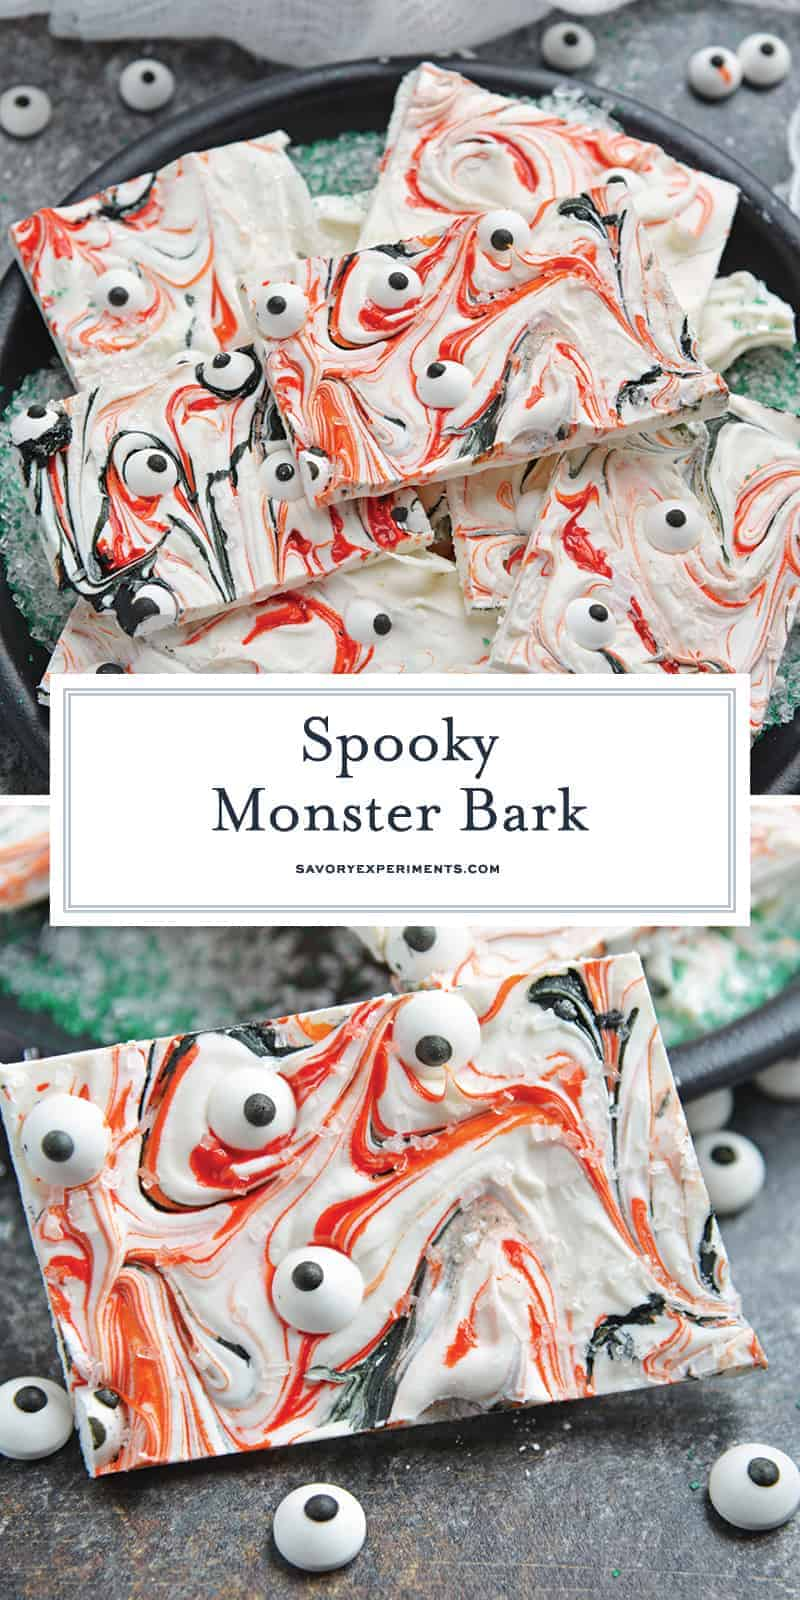 Monster Bark is a quick and easy Halloween treat made with candy eyeballs. Always a hit with kids, it's the perfect Halloween dessert for any party! #monsterbark #howtomakechocolatebark #candyeyeballs www.savoryexperiments.com